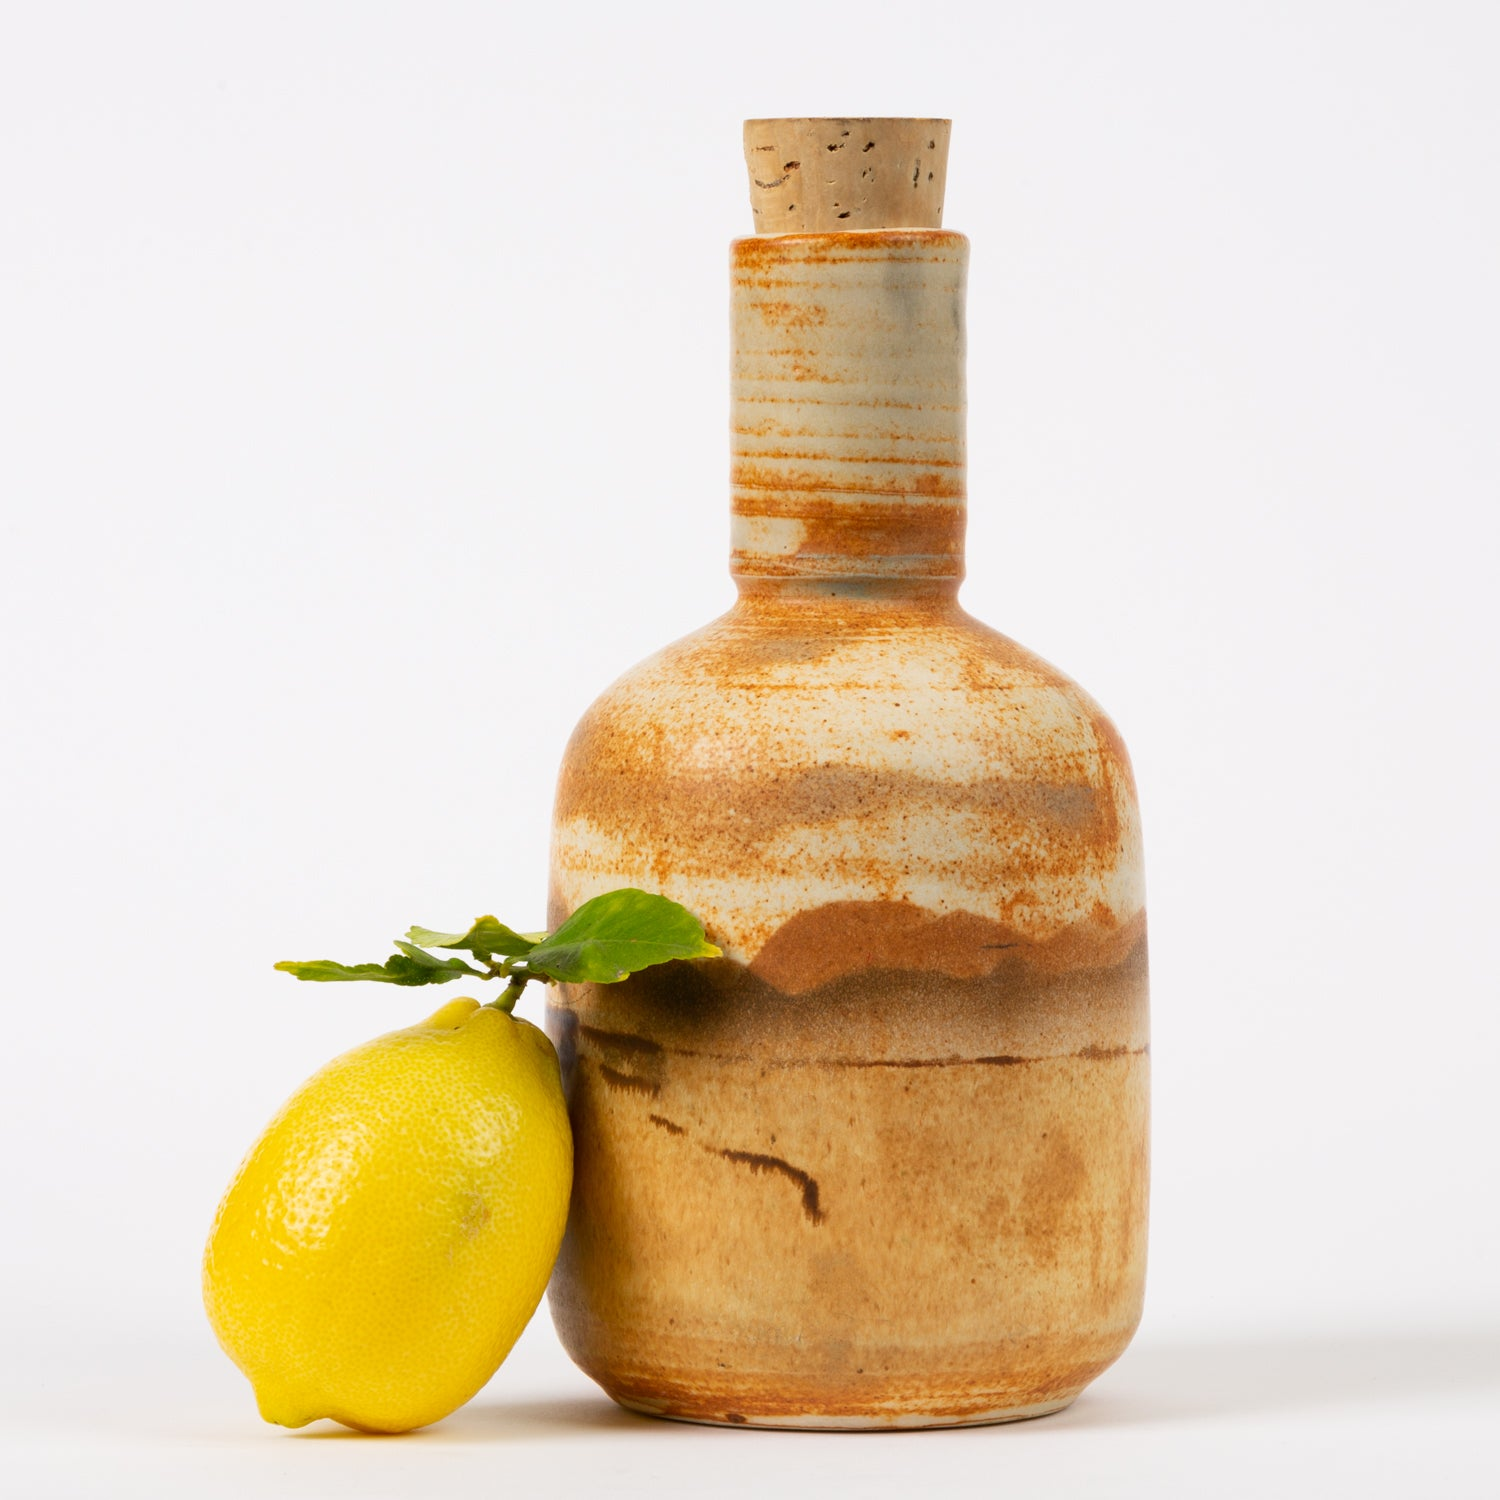 California Studio Pottery Bottle with Cork Stopper